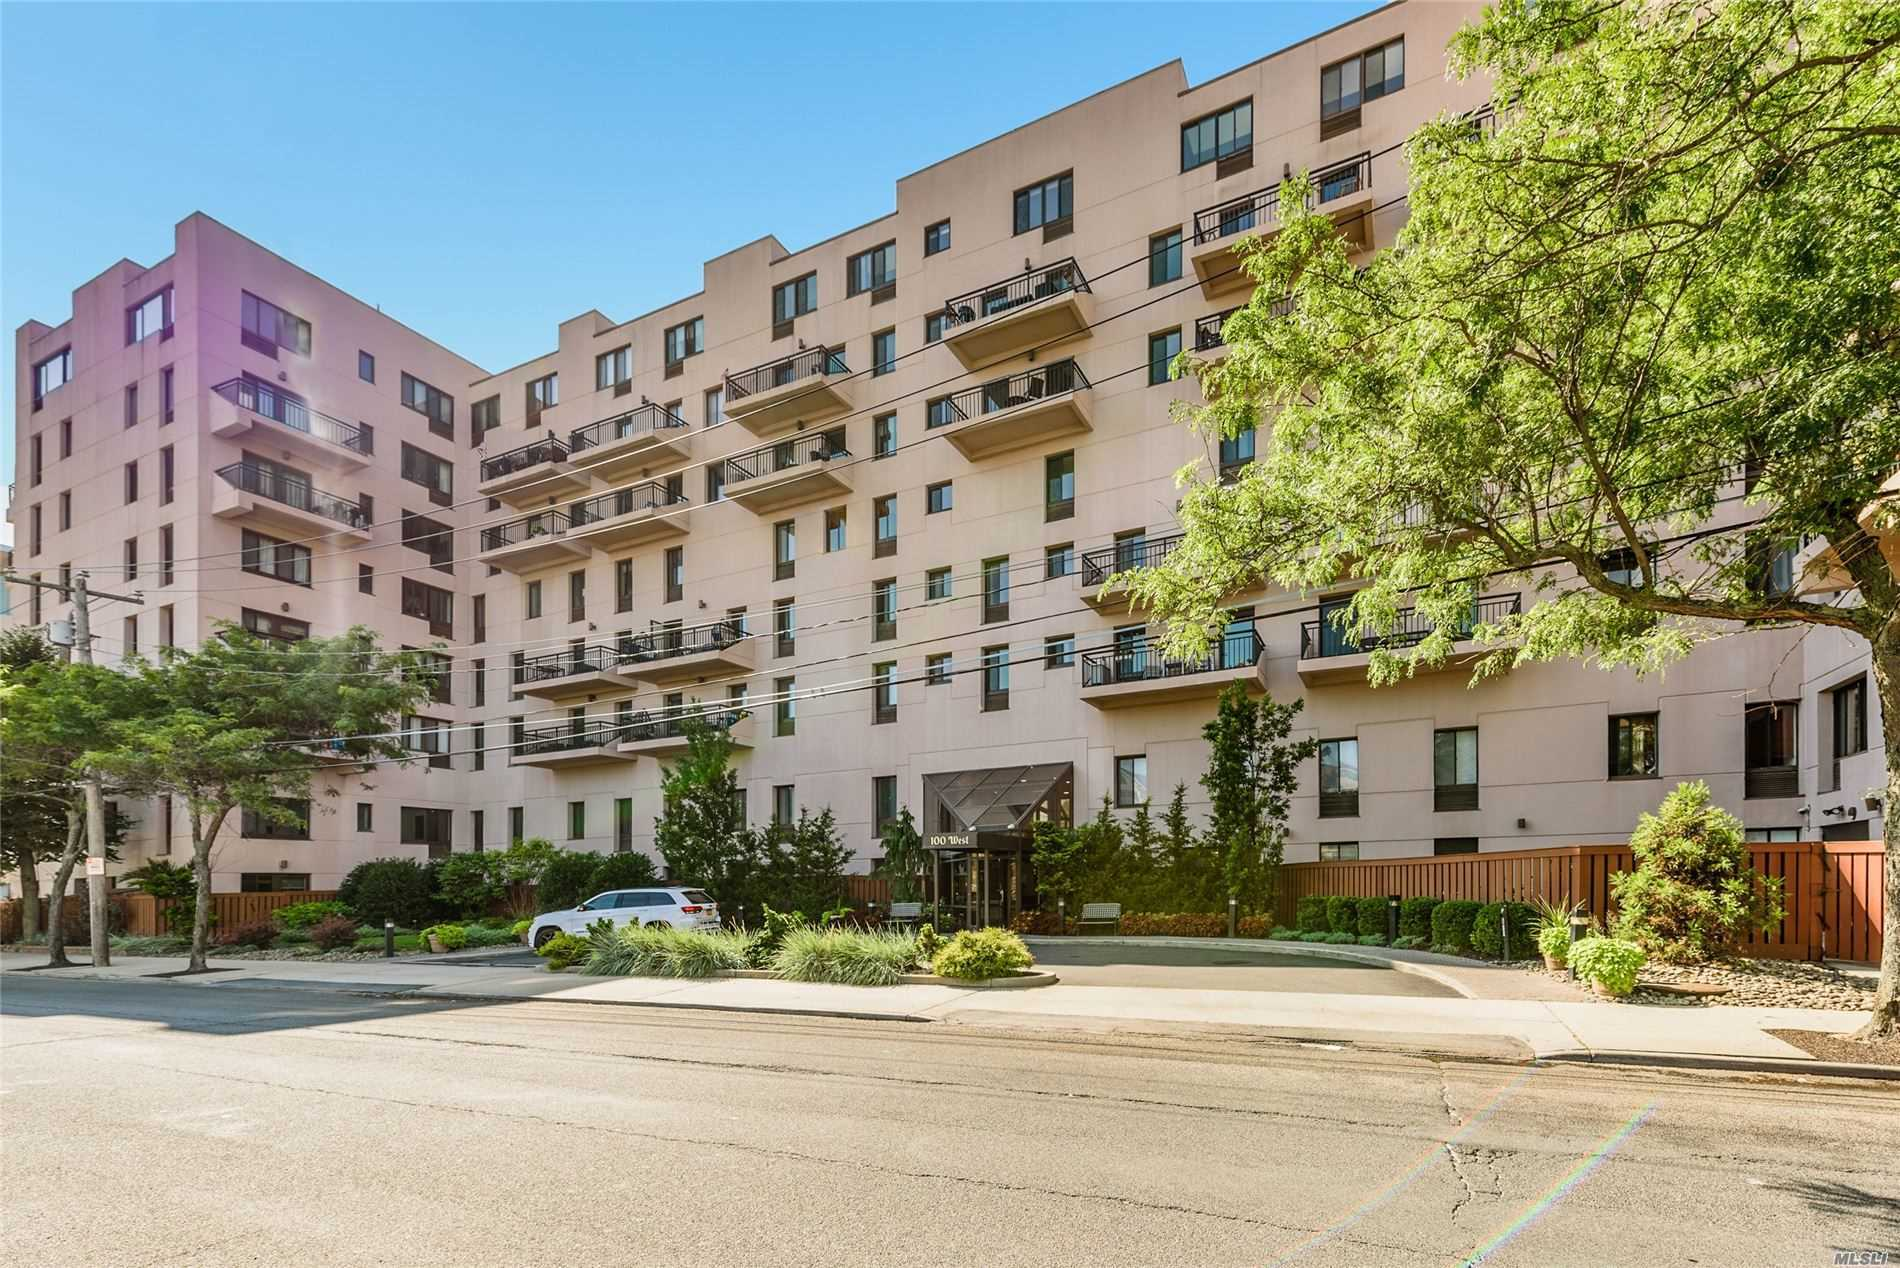 Property for sale at 100 W Broadway, Long Beach NY 11561, Long Beach,  New York 11561